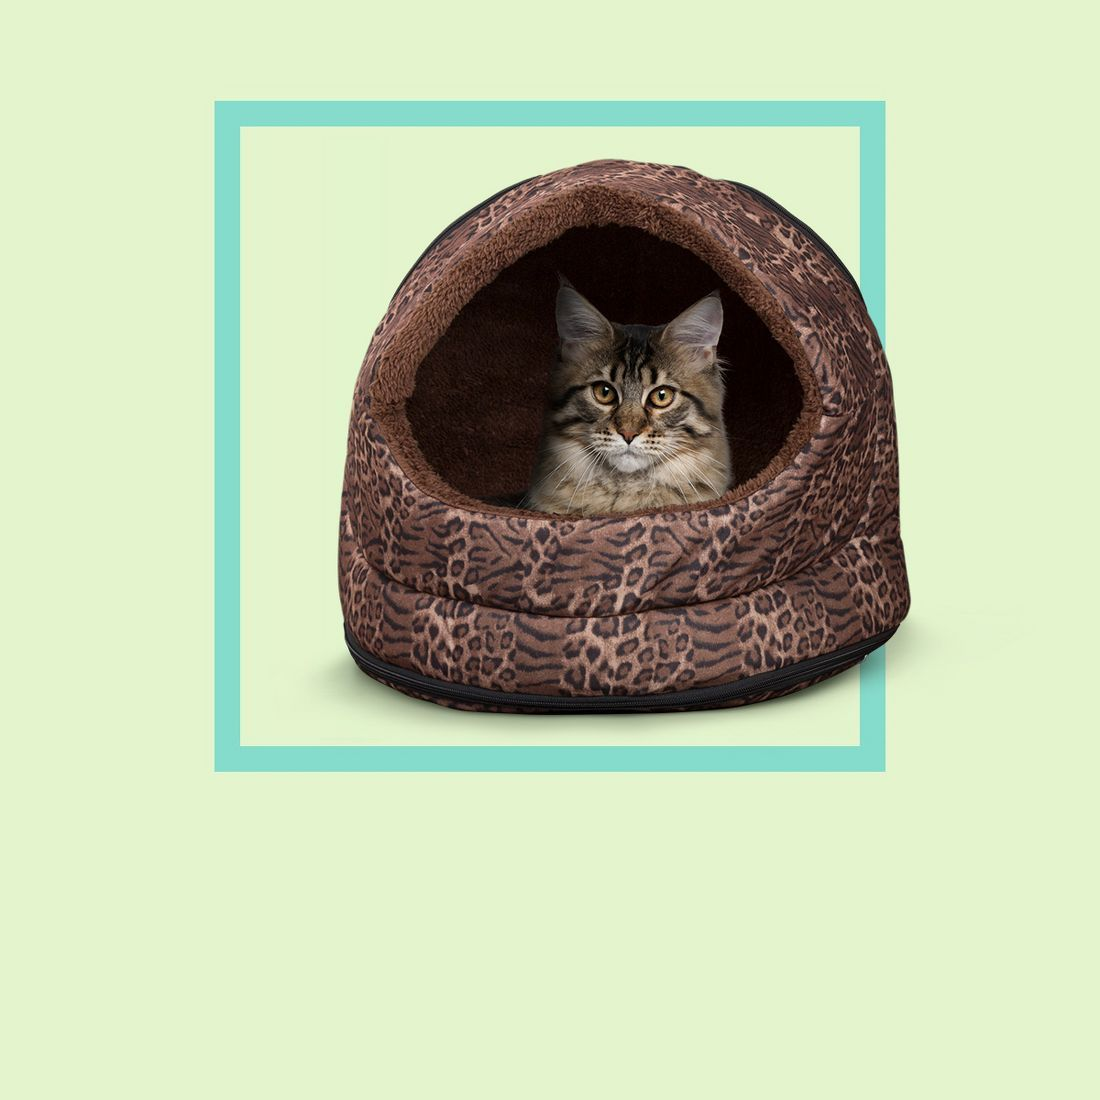 New Cat Checklist Target In 2020 Cute Cats And Kittens Cat Checklist Cats And Kittens